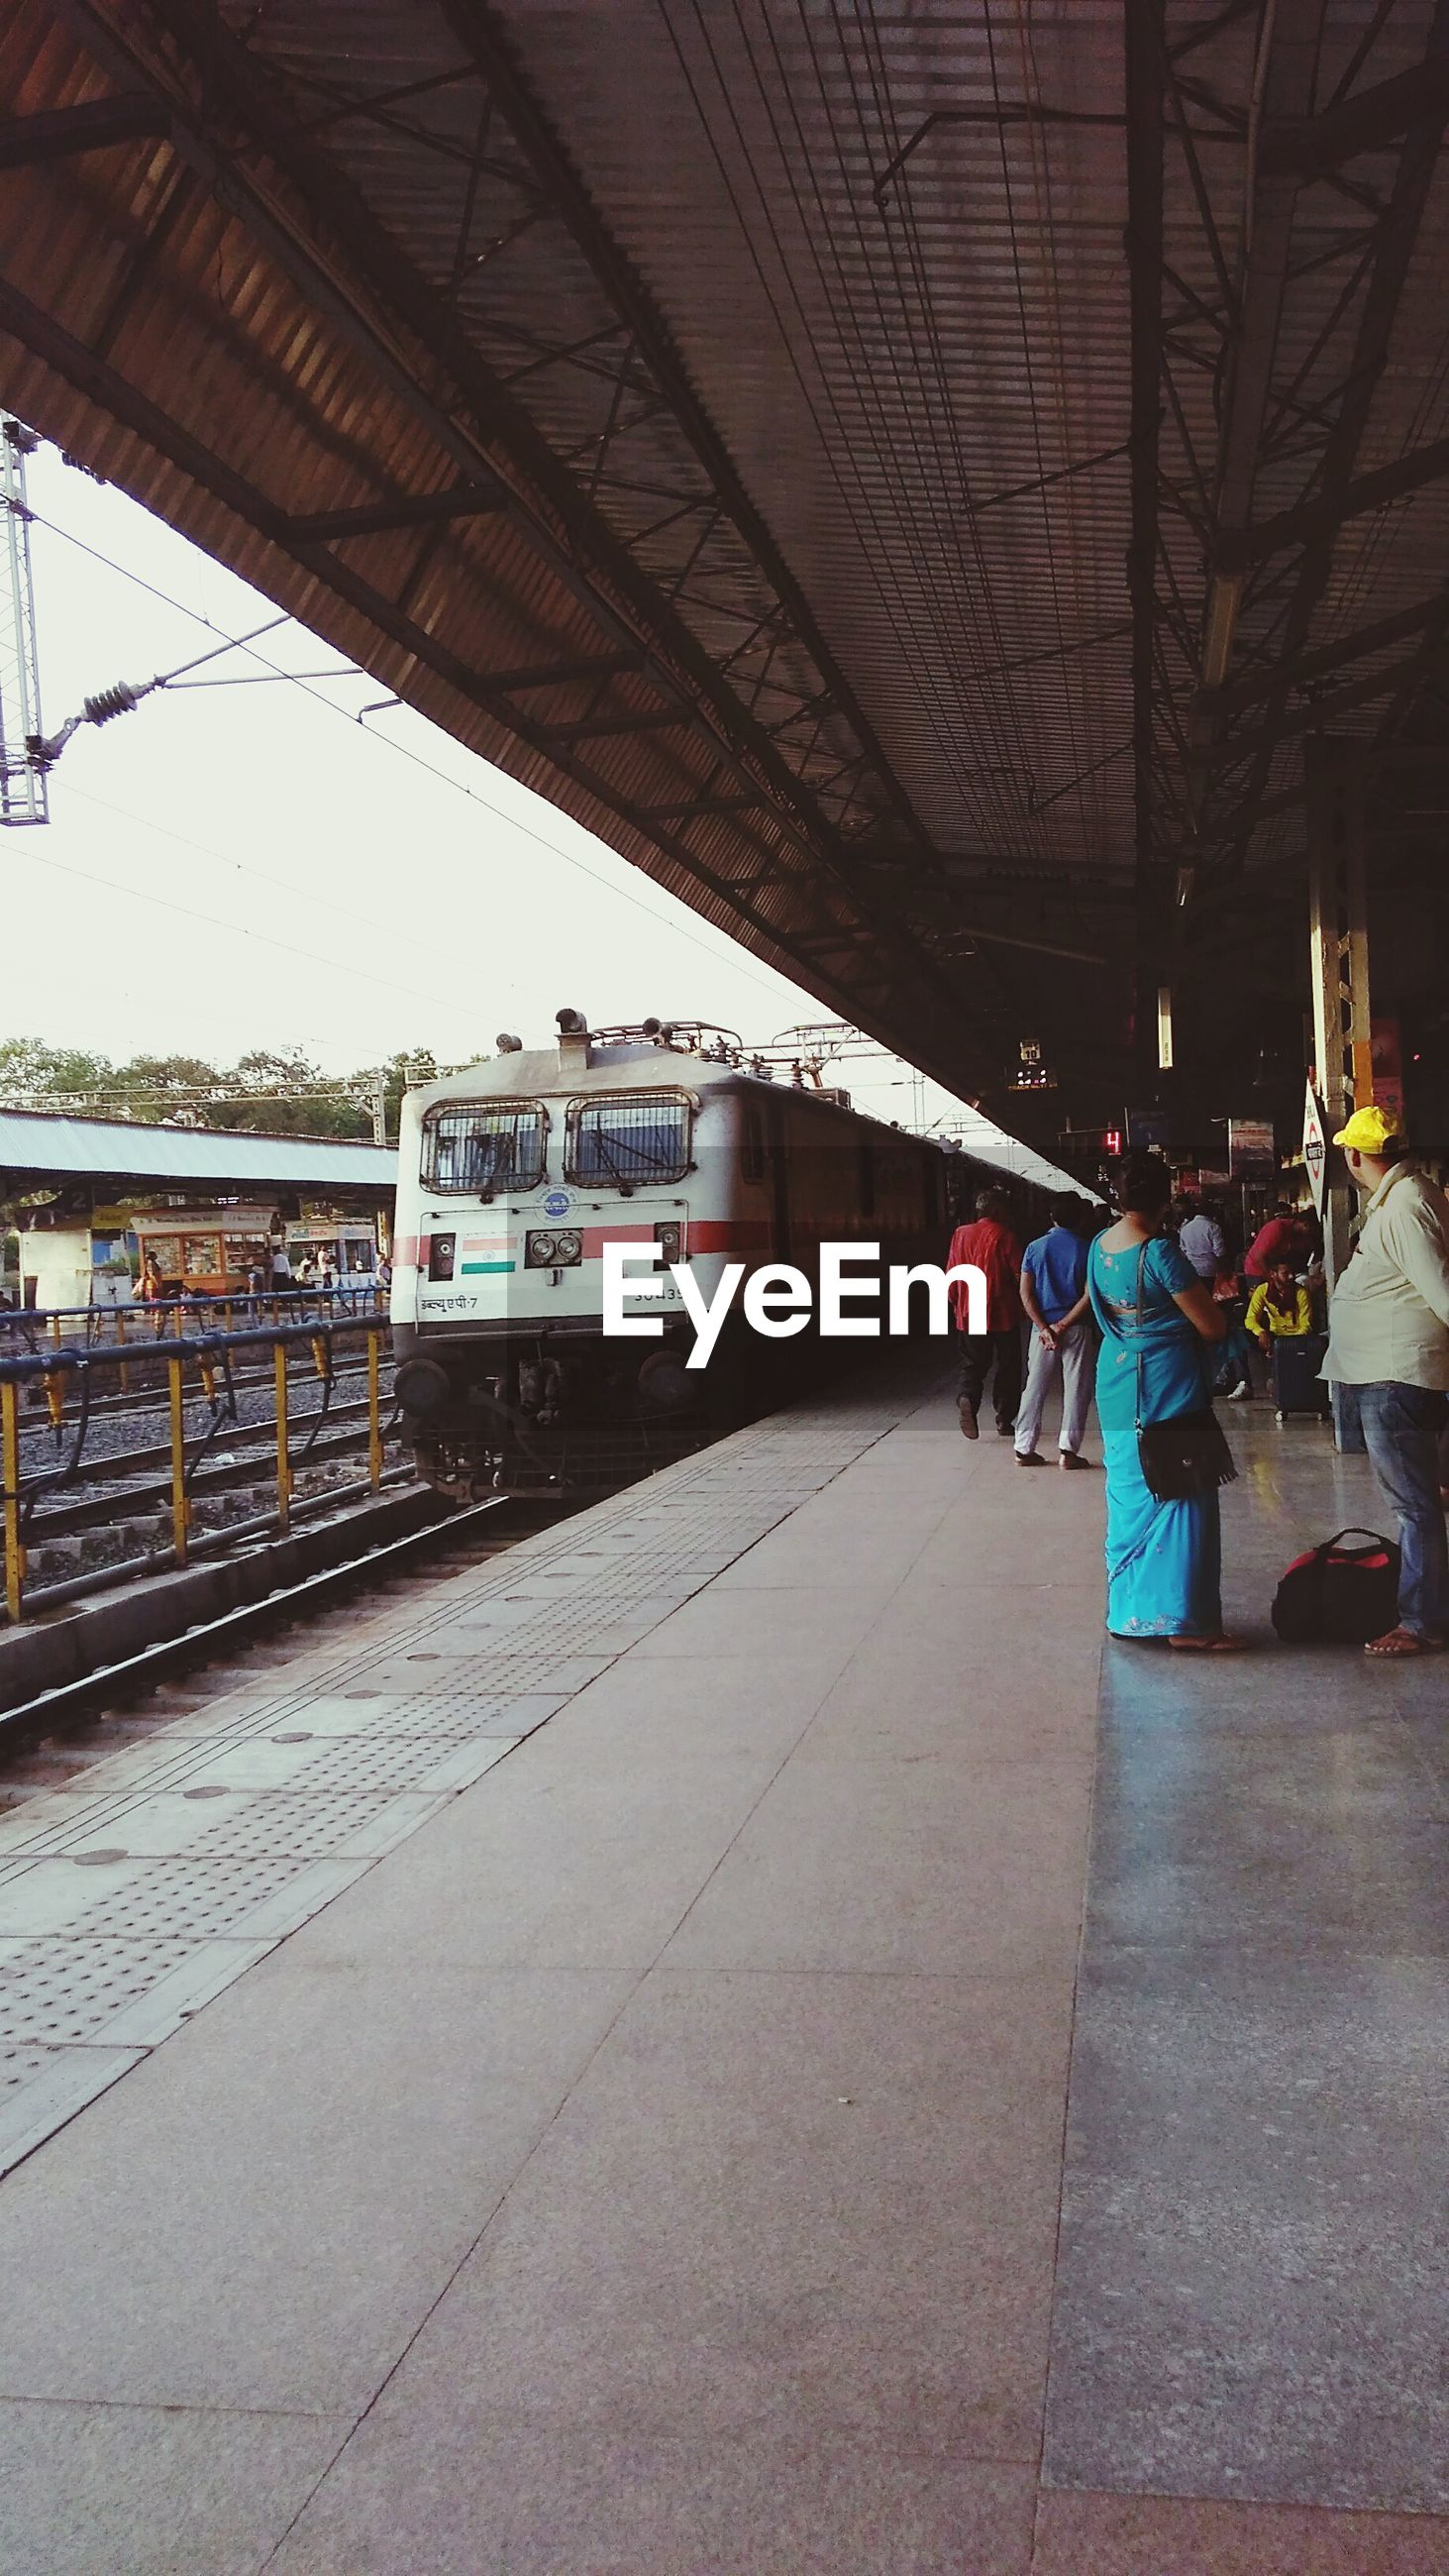 transportation, real people, bridge - man made structure, public transportation, built structure, connection, railroad station platform, mode of transport, men, rail transportation, architecture, day, railroad station, train - vehicle, full length, large group of people, women, outdoors, city, sky, people